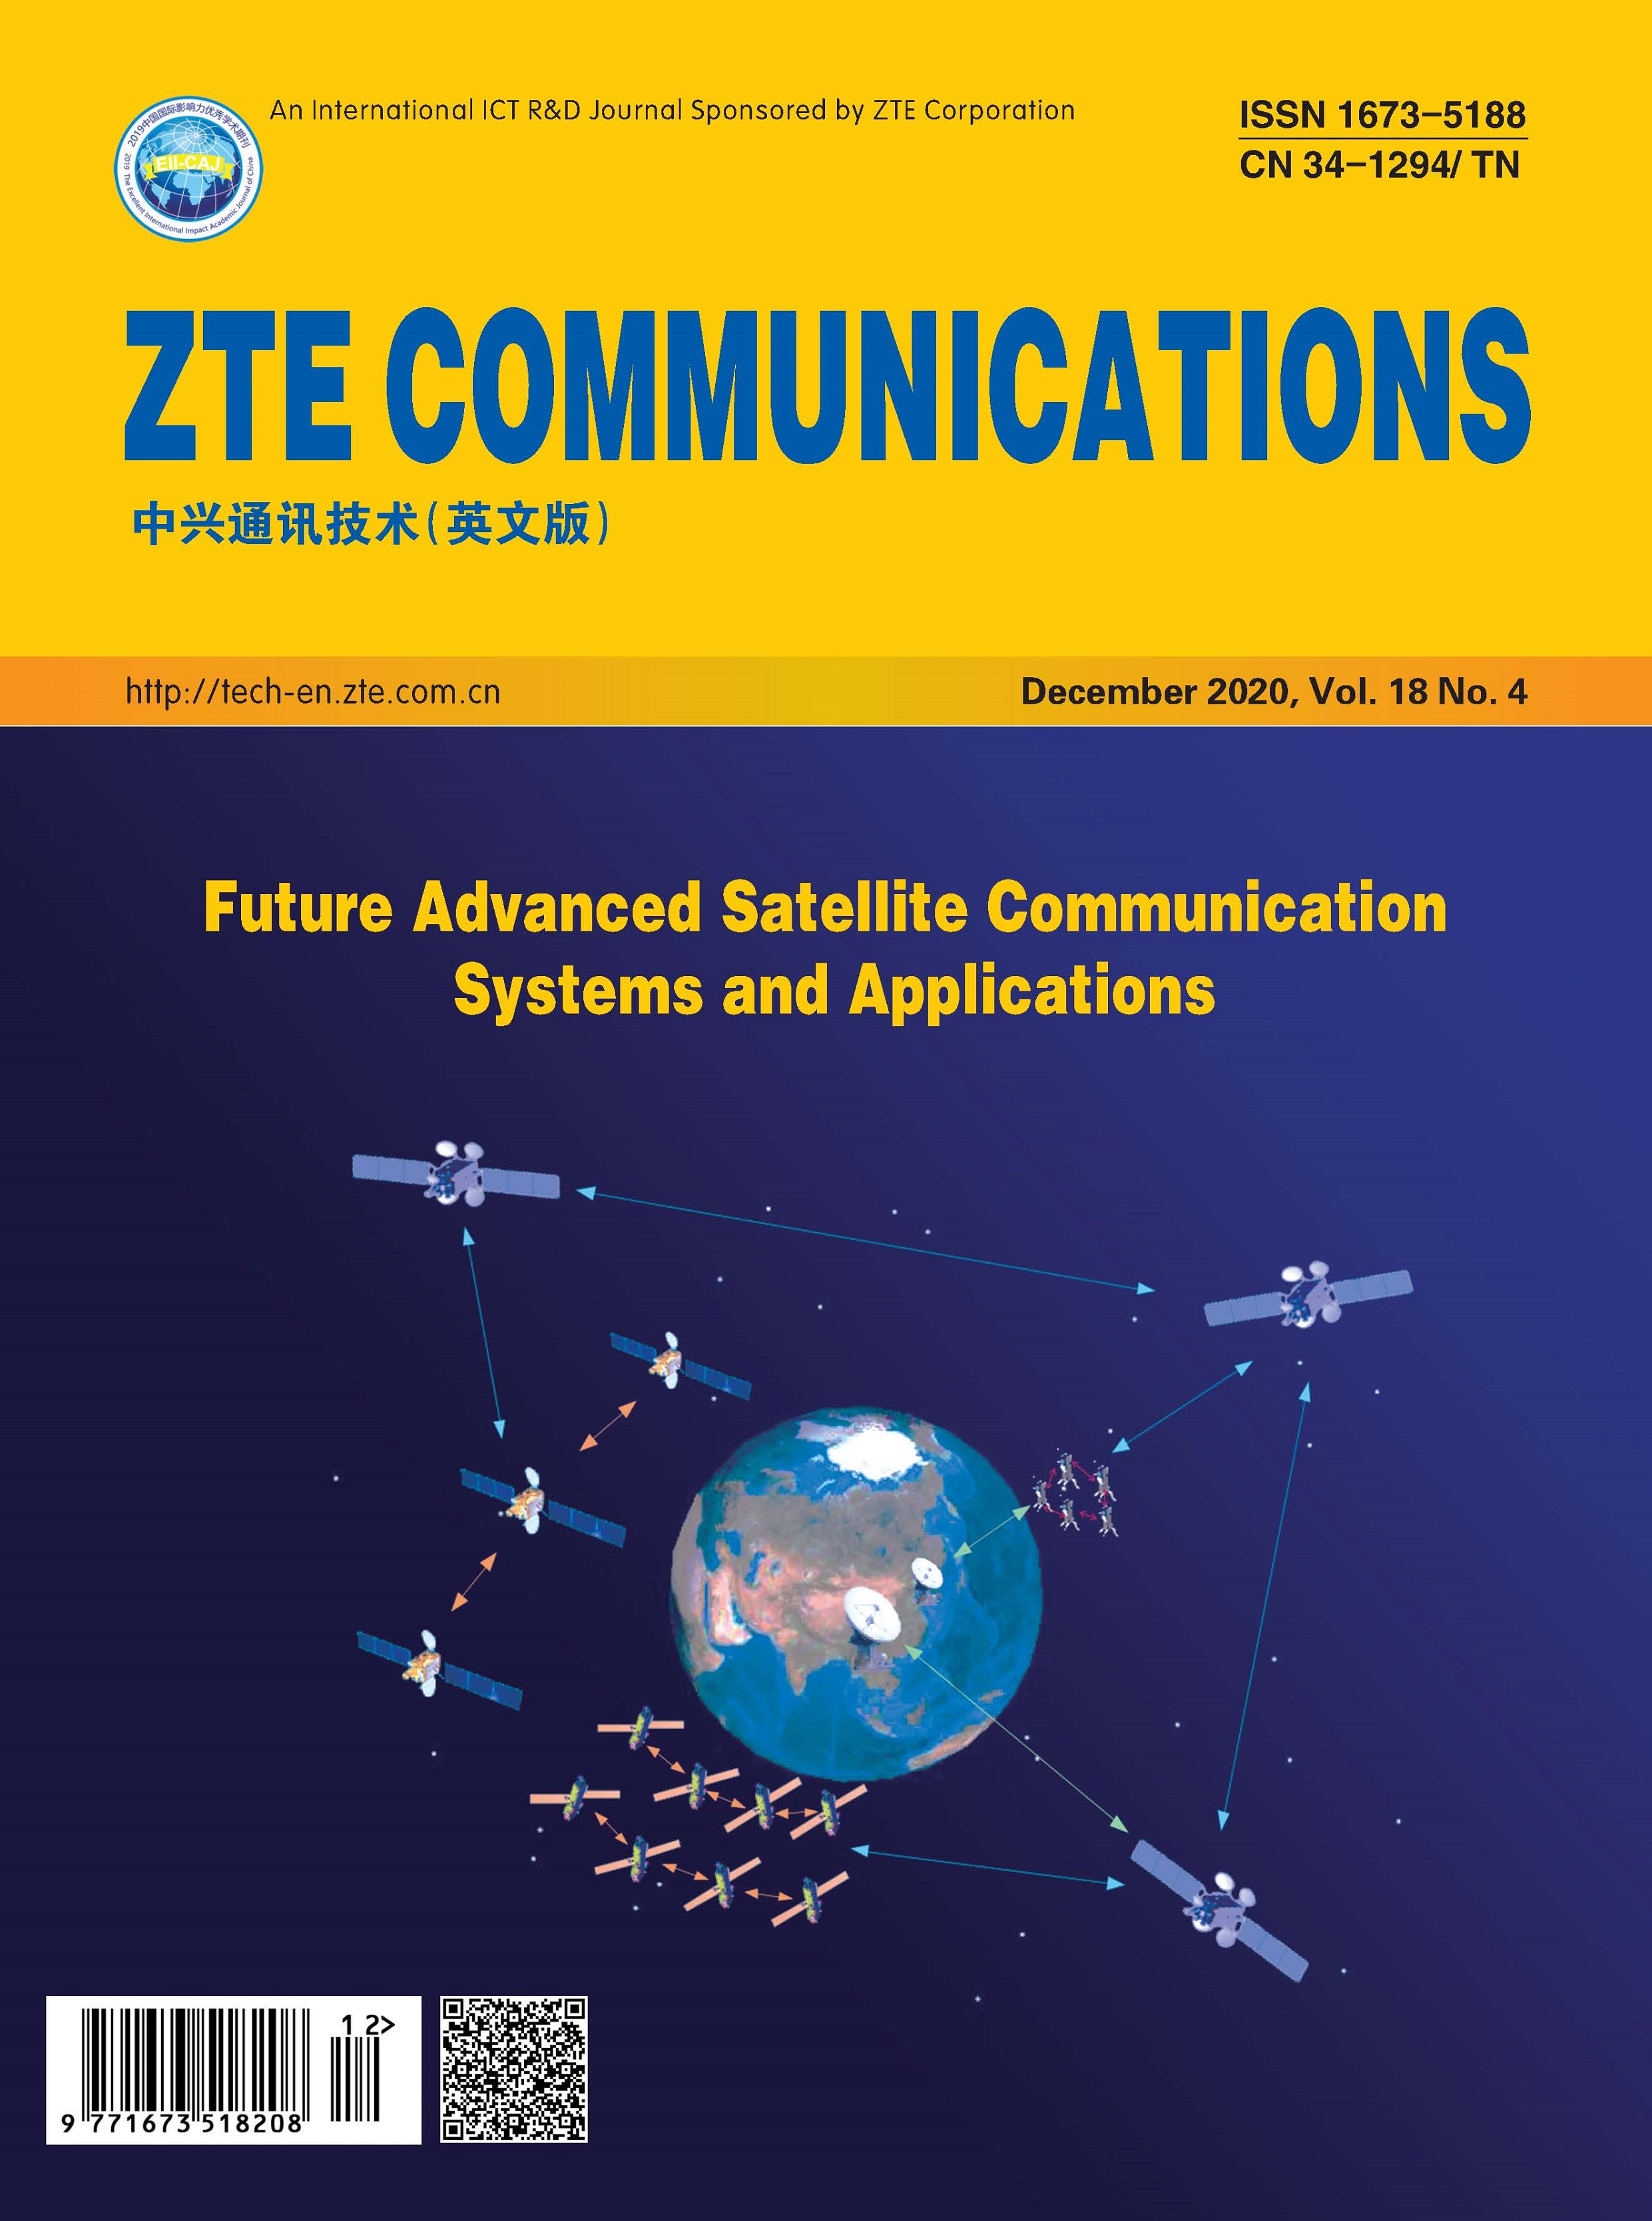 Special Topic on Future Advanced Satellite Communication Systems and Applications